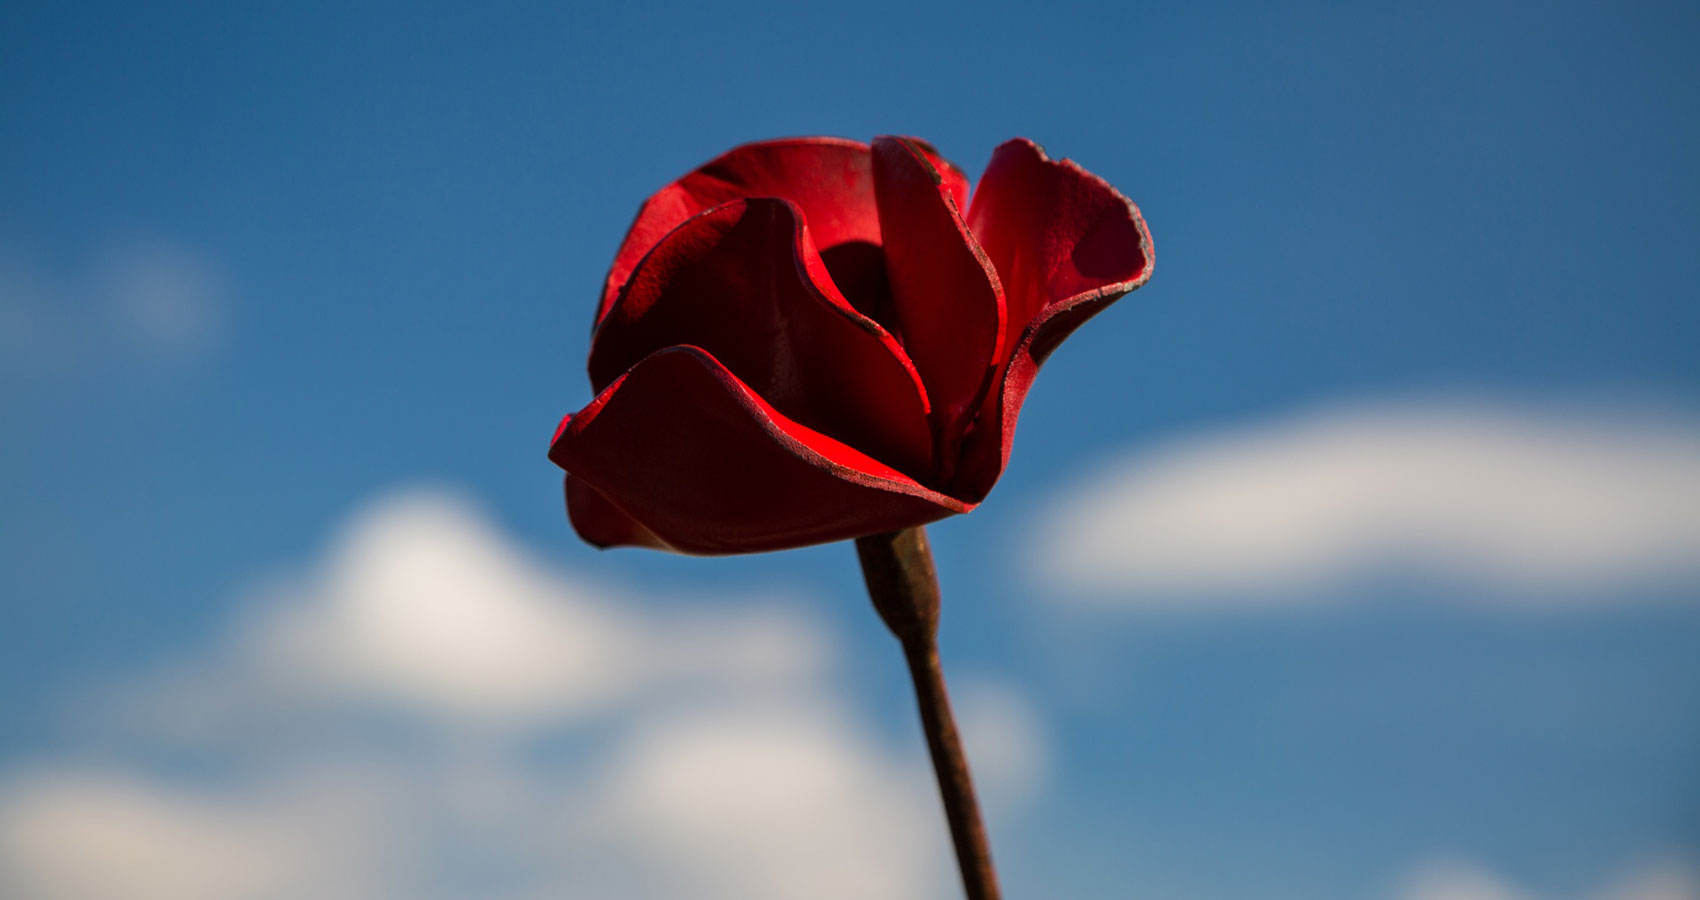 Lest We Forget, written by Matthew Earl at Spillwords.com